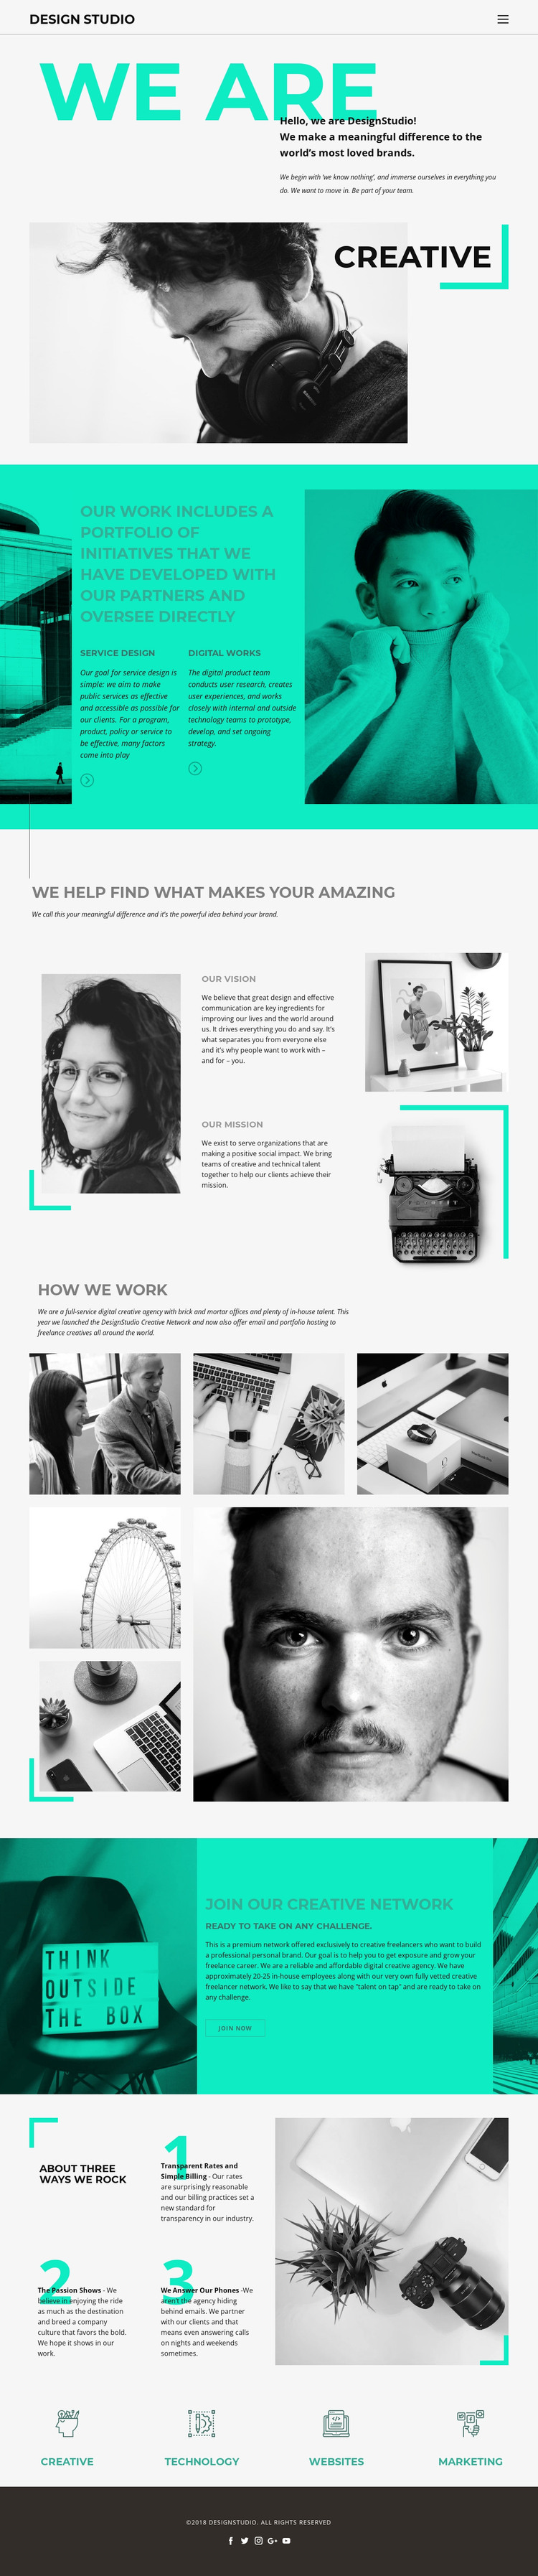 We are creative business WordPress Theme